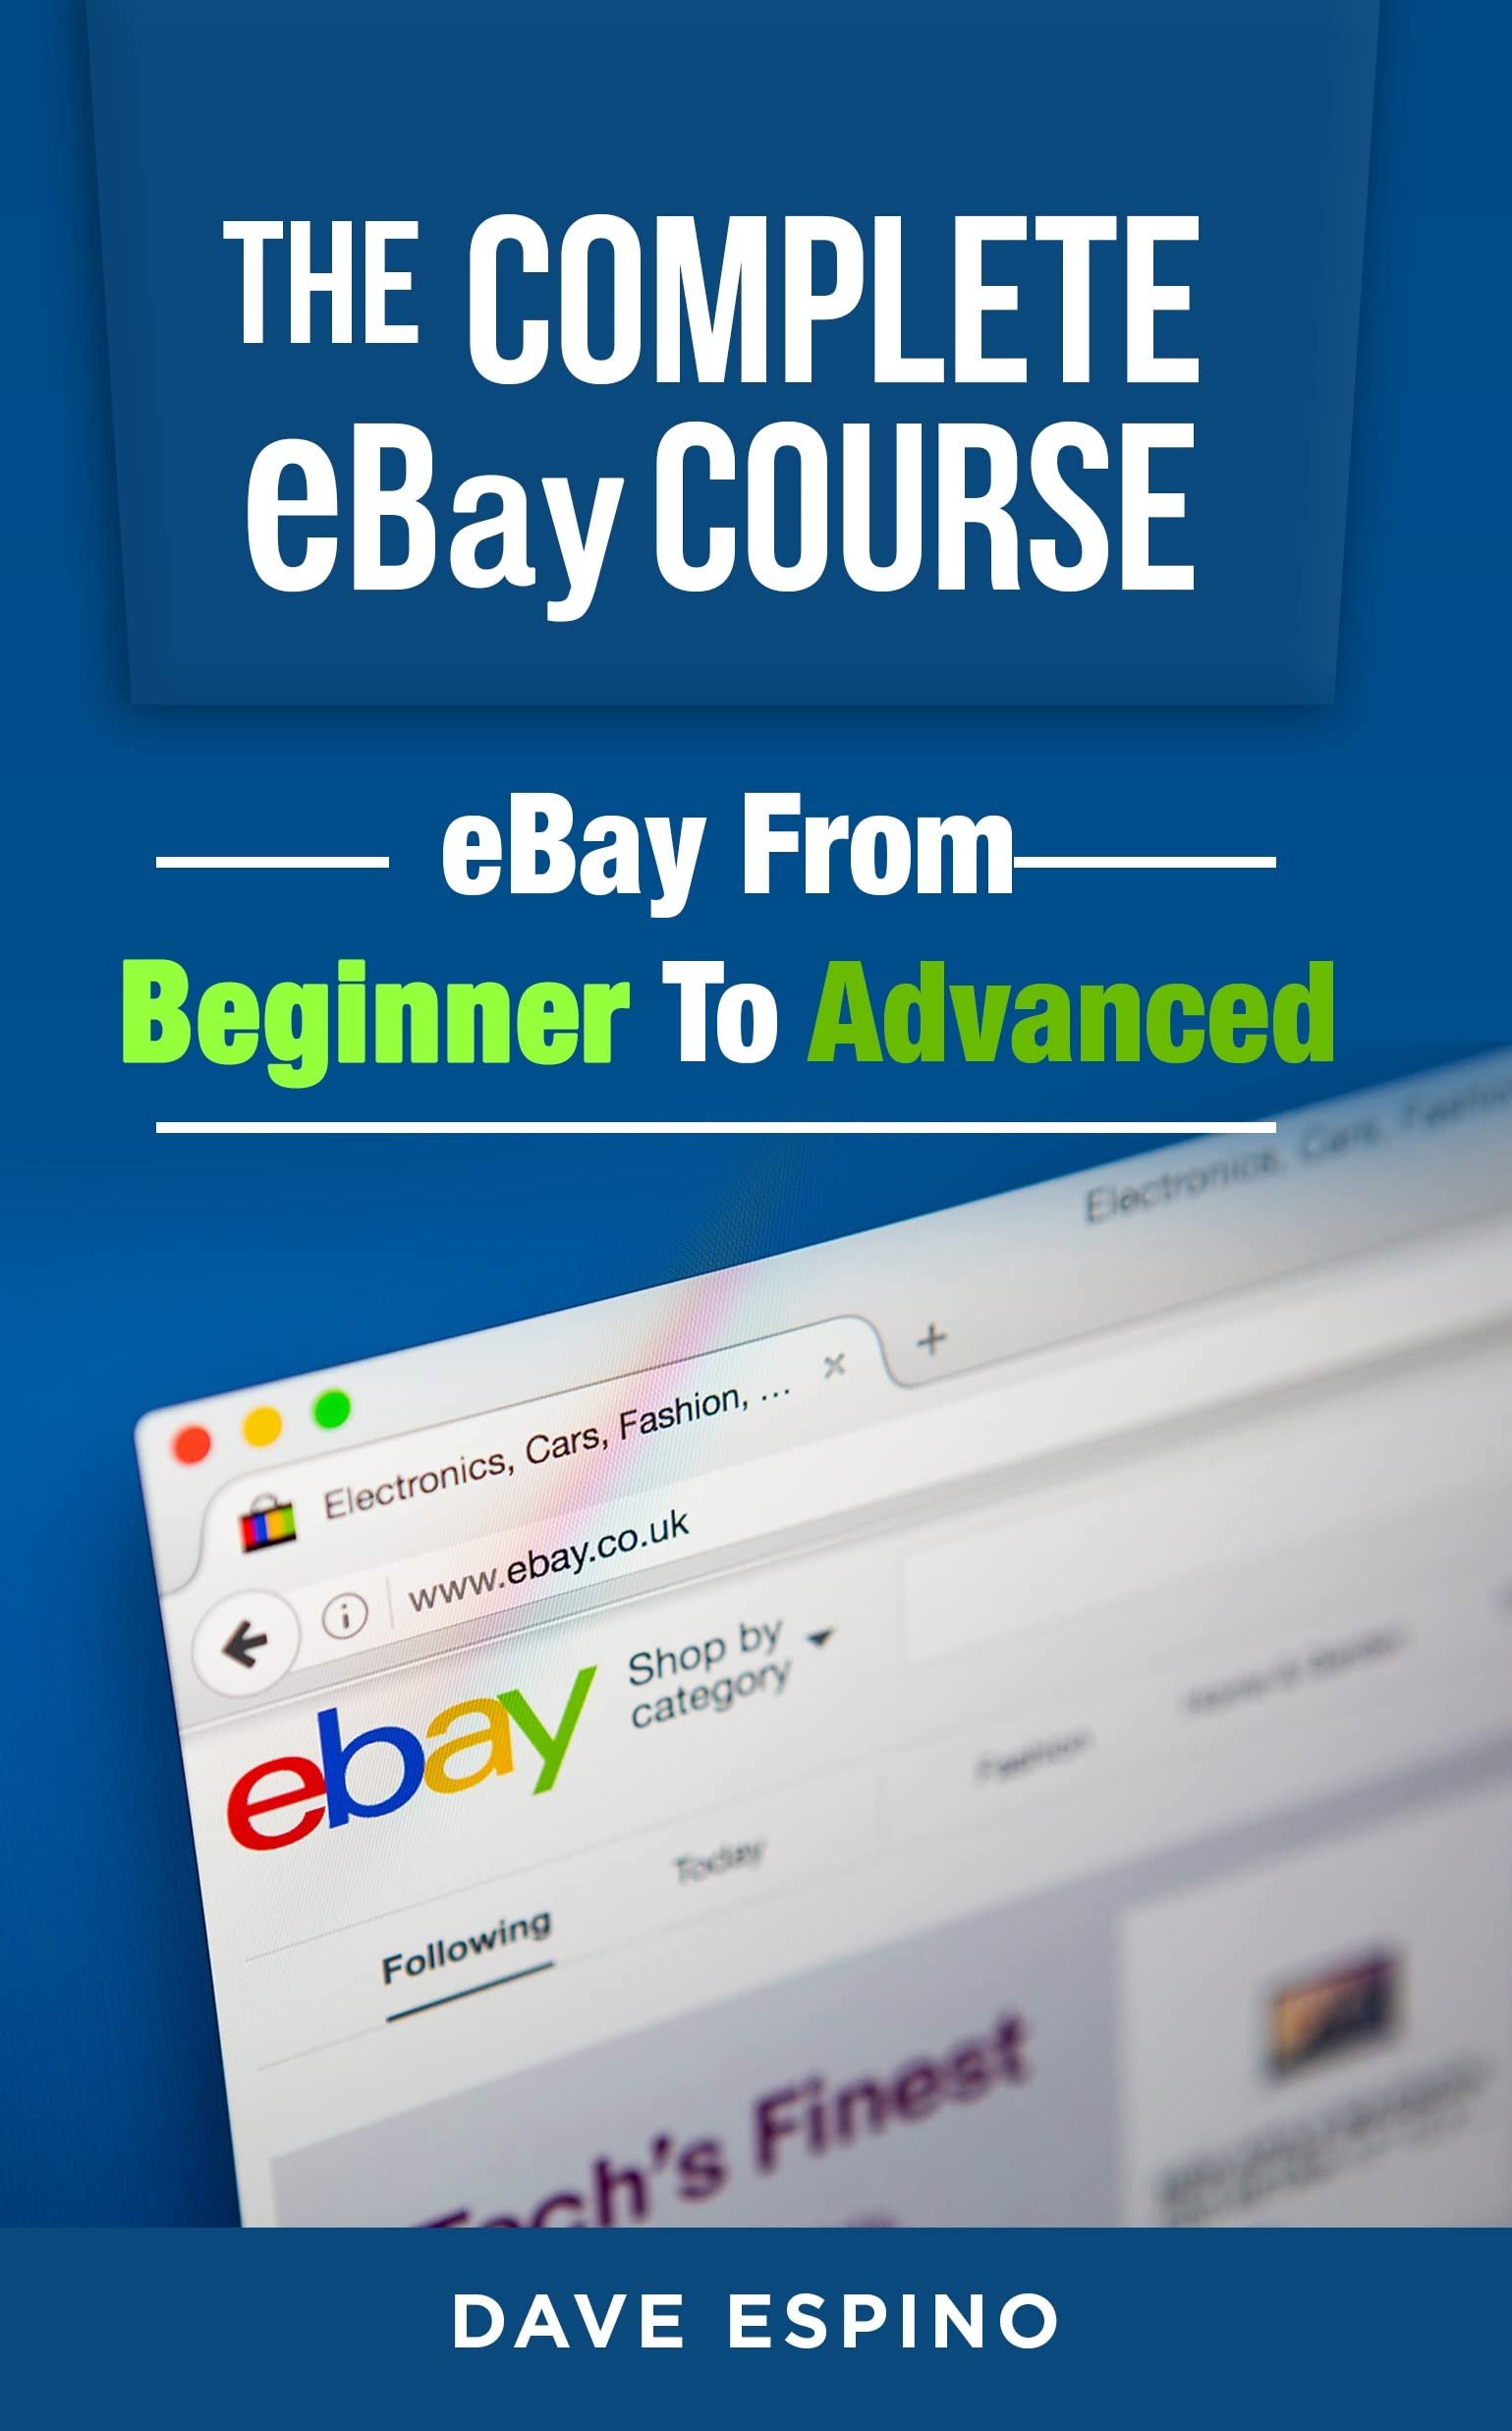 Amazon Com The Complete Ebay Course Ebay From Beginner To Advanced Online Video Course Online Code Software